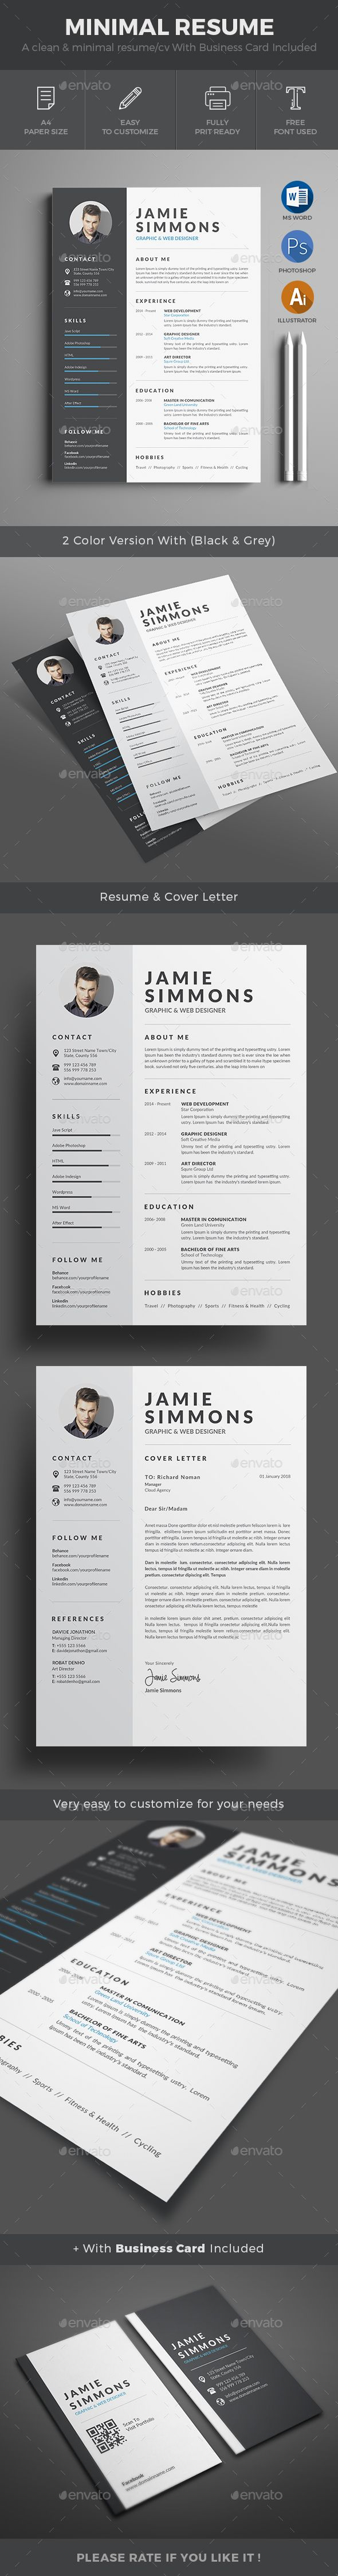 #Resume - Resumes #Stationery Download here: https://graphicriver.net/item/resume/18670835?ref=alena994